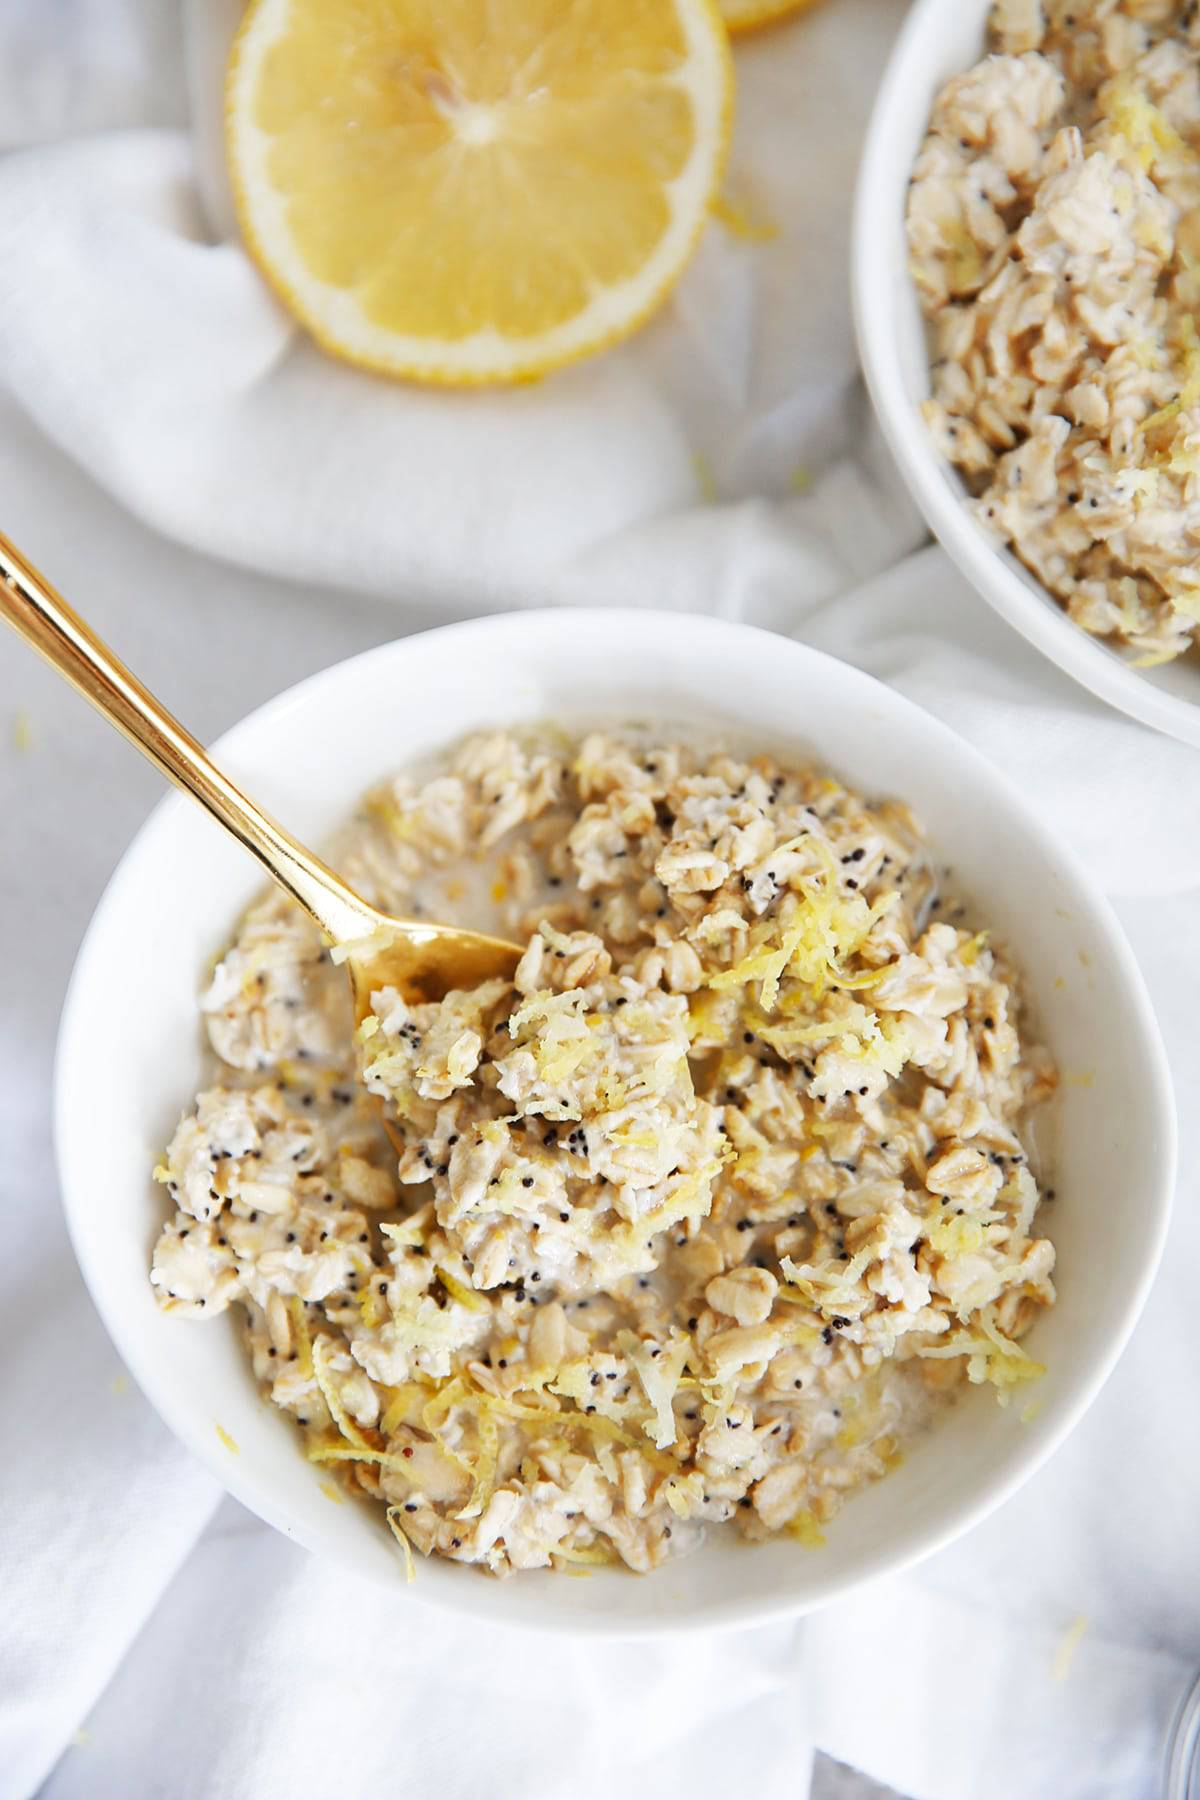 Lemon Poppy Seed Overnight Oats (Gluten-Free)